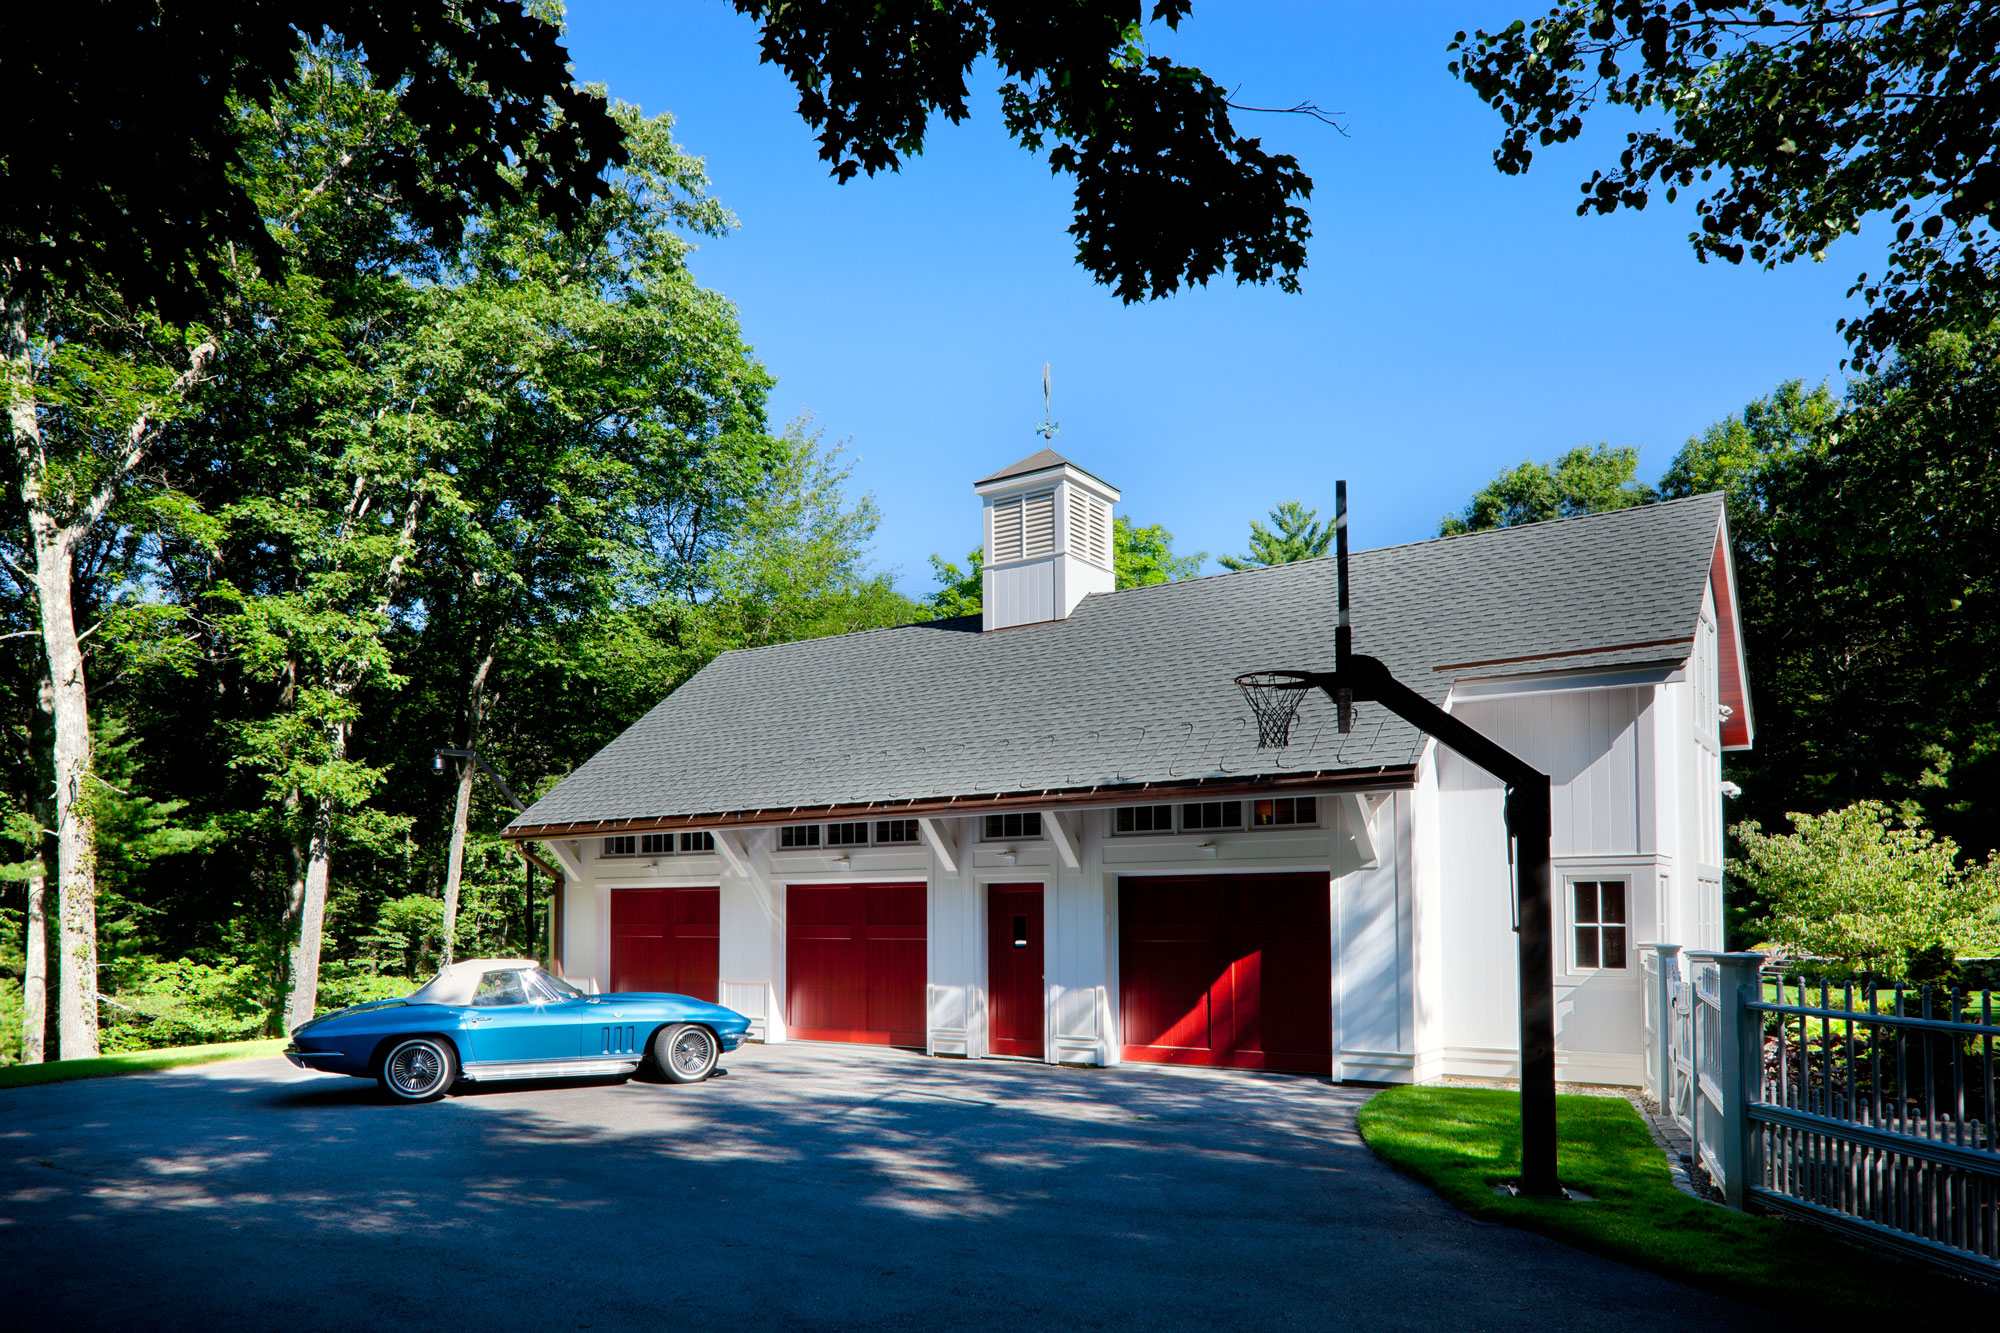 Garage Makeover Adds Space And Addresses Water Management Issues |  Remodeling | Awards, Garages, Siding, Design, Exteriors, 2013 Remodeling  Design Awards, ...